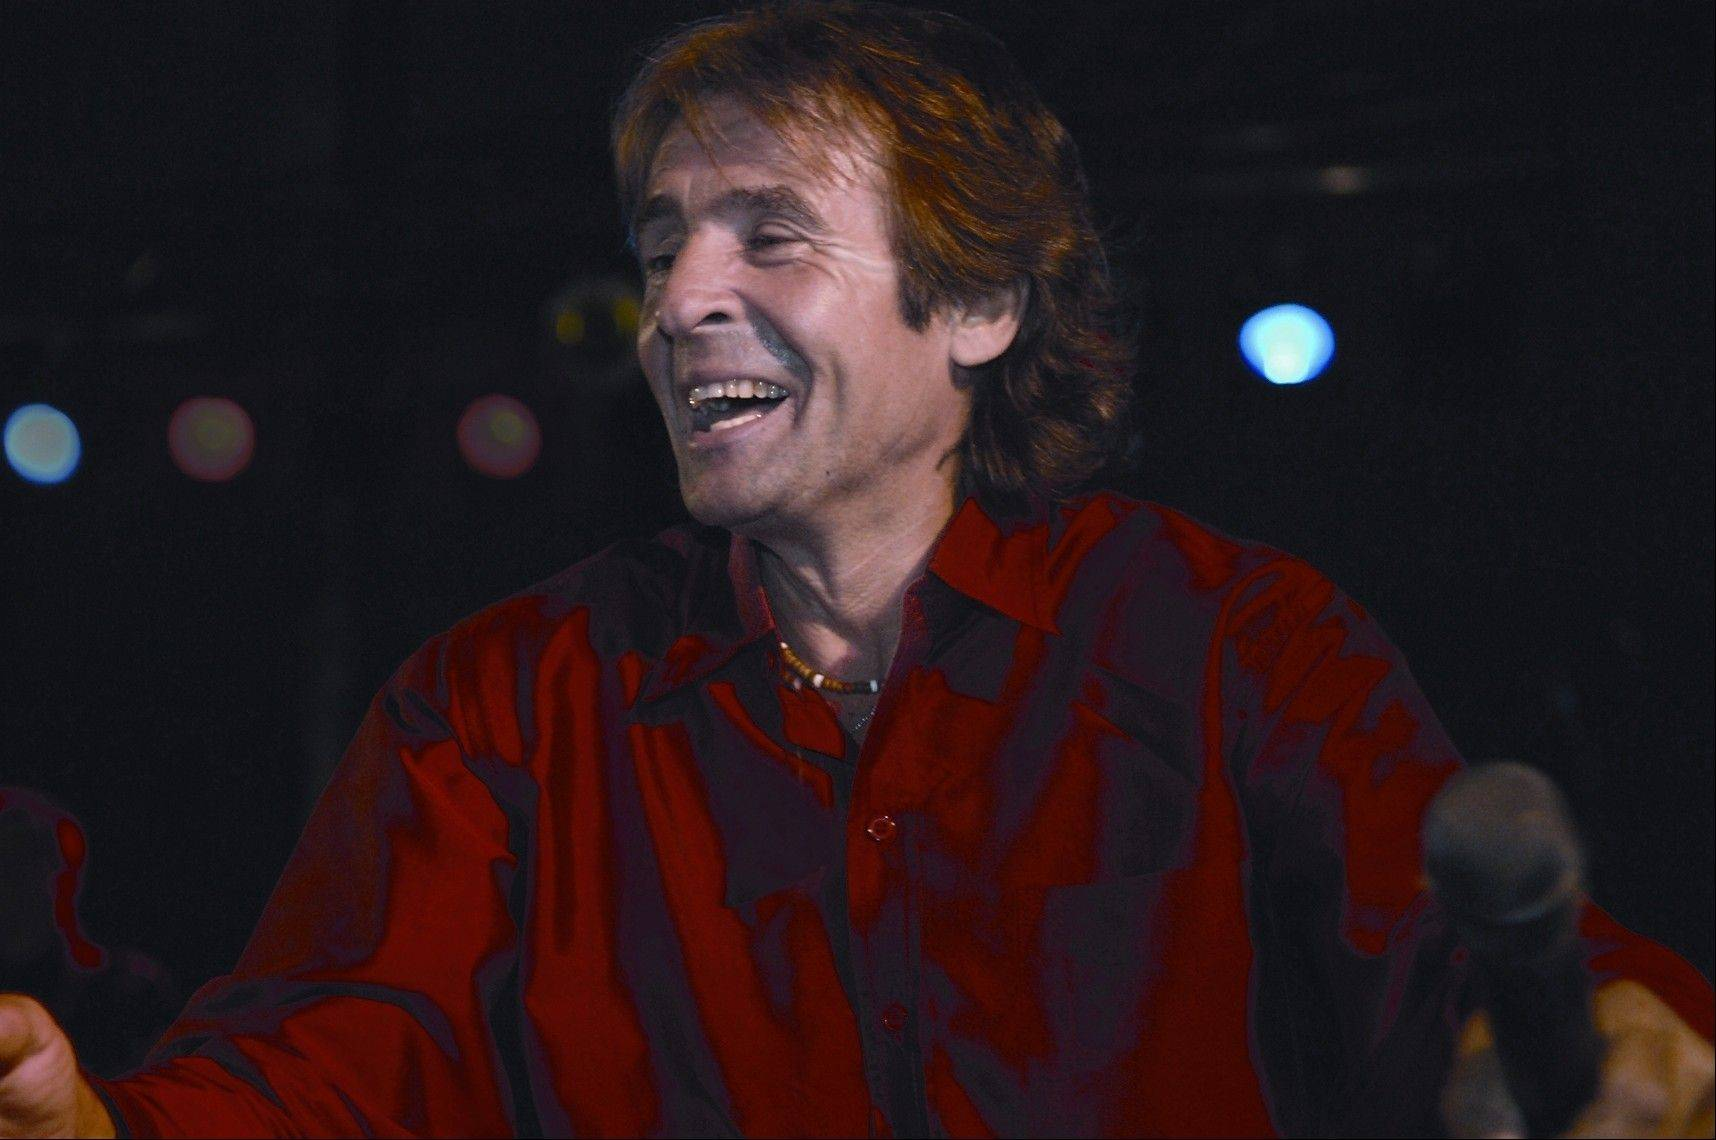 Davy Jones performed in recent years with David Cassidy at the Rosemont Theatre.